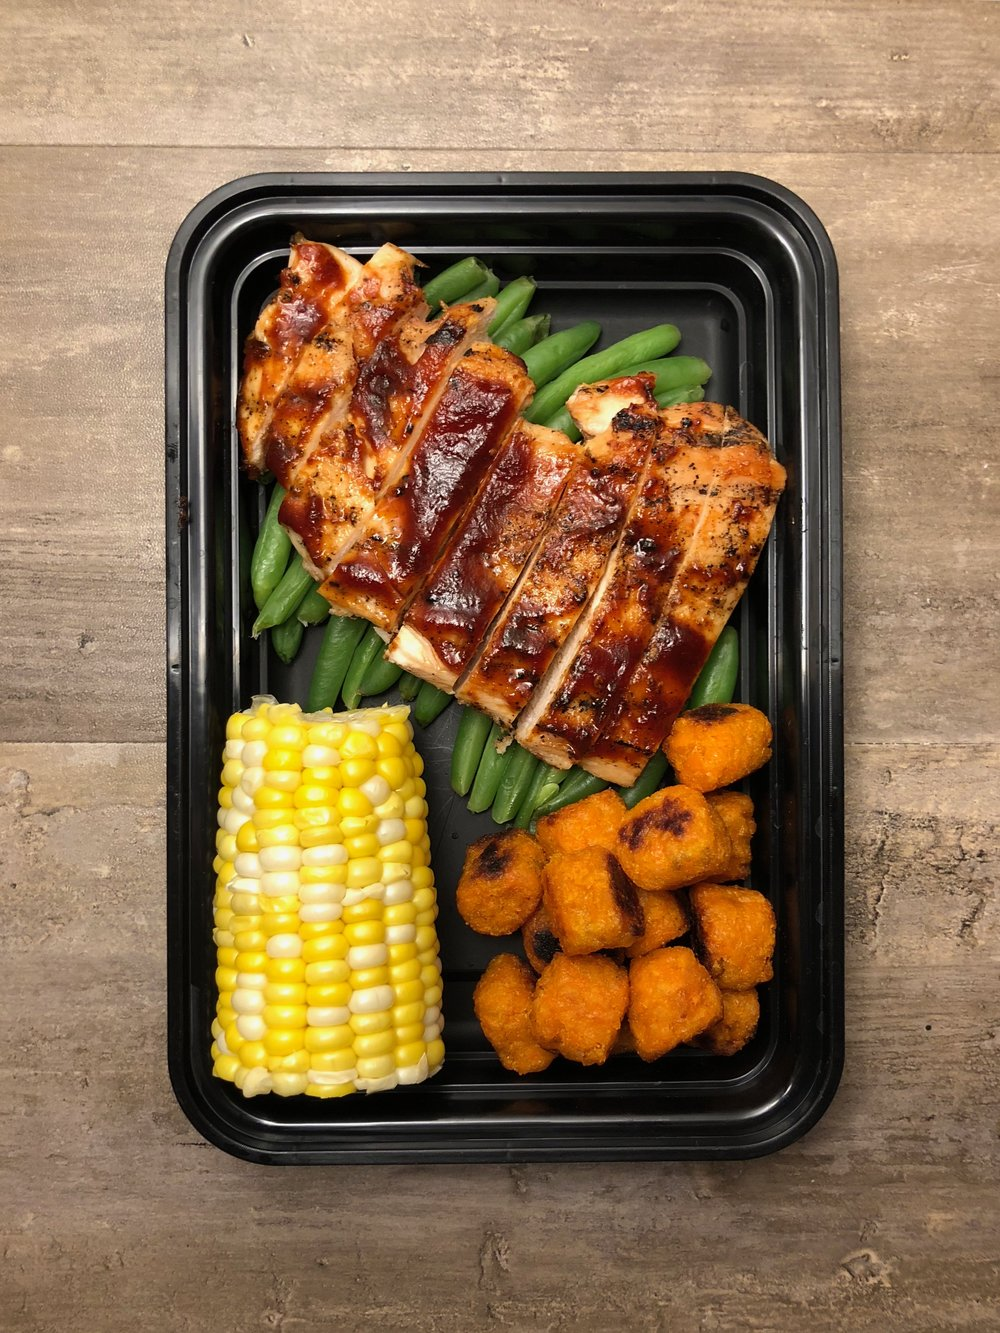 Bbq Chicken With Green Beans The Meal Prep Manual